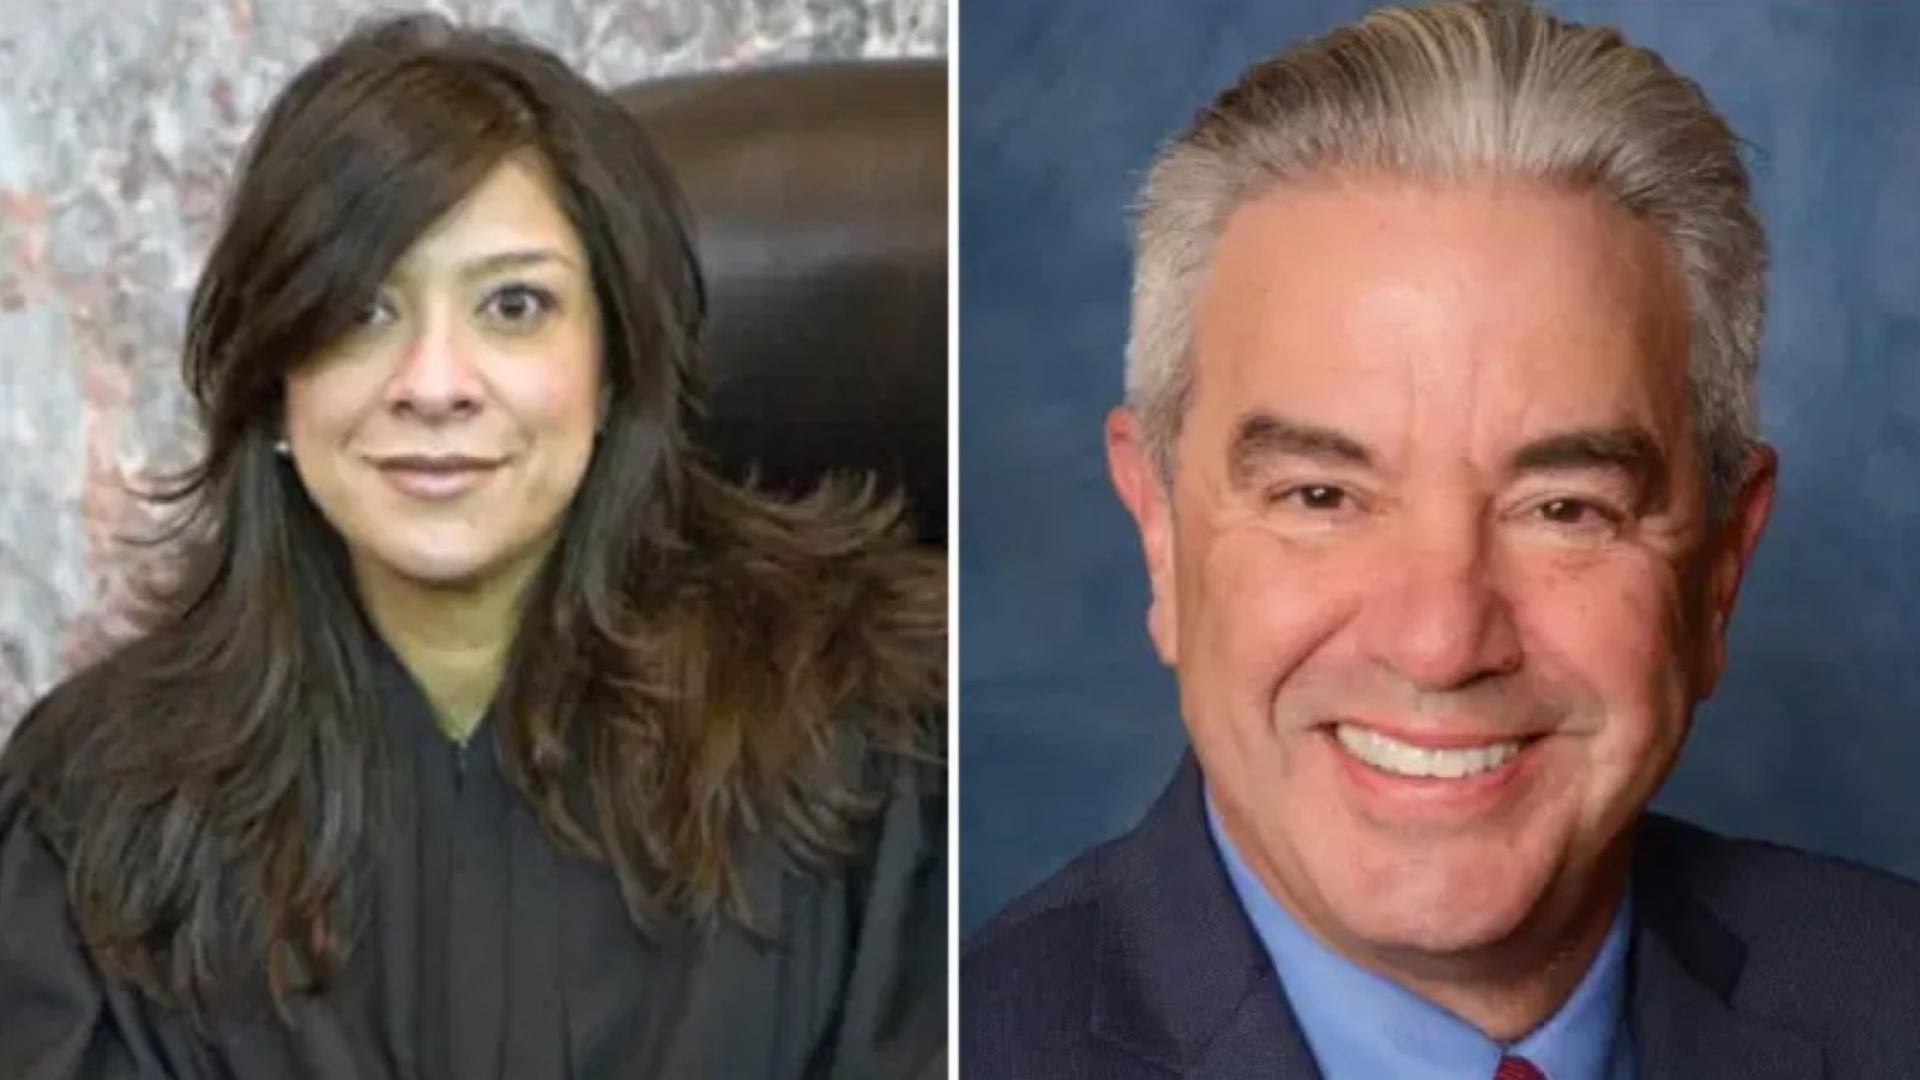 A gunman wearing a FedEx uniform opened fire at the home of federal judge Esther Salas, according to reports.